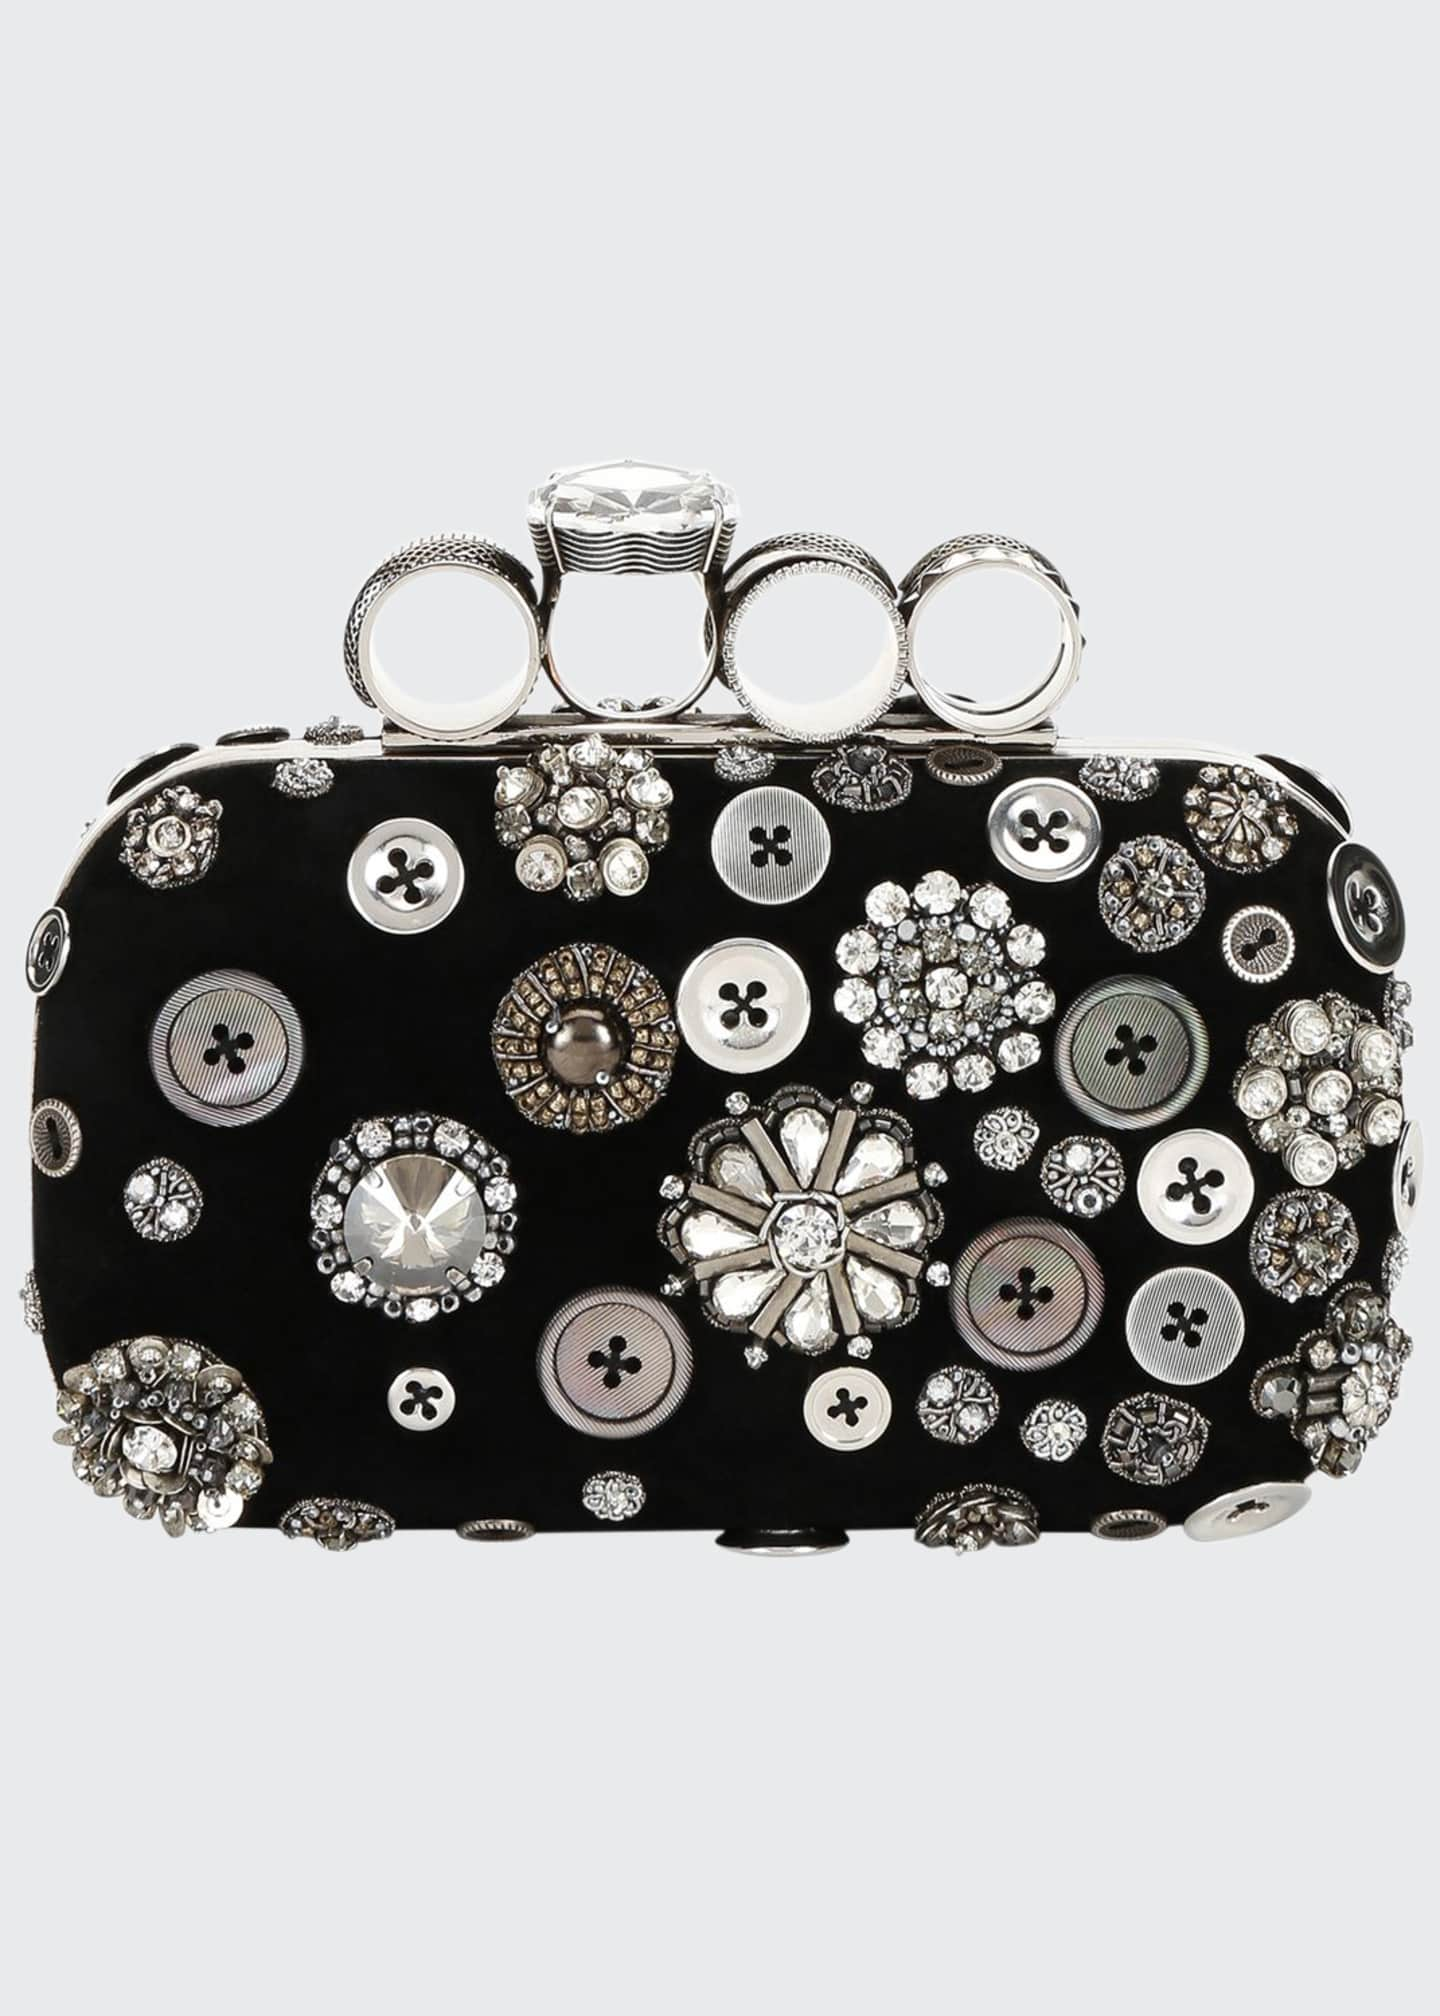 Alexander McQueen Allover Button-Embellished Clutch Bag